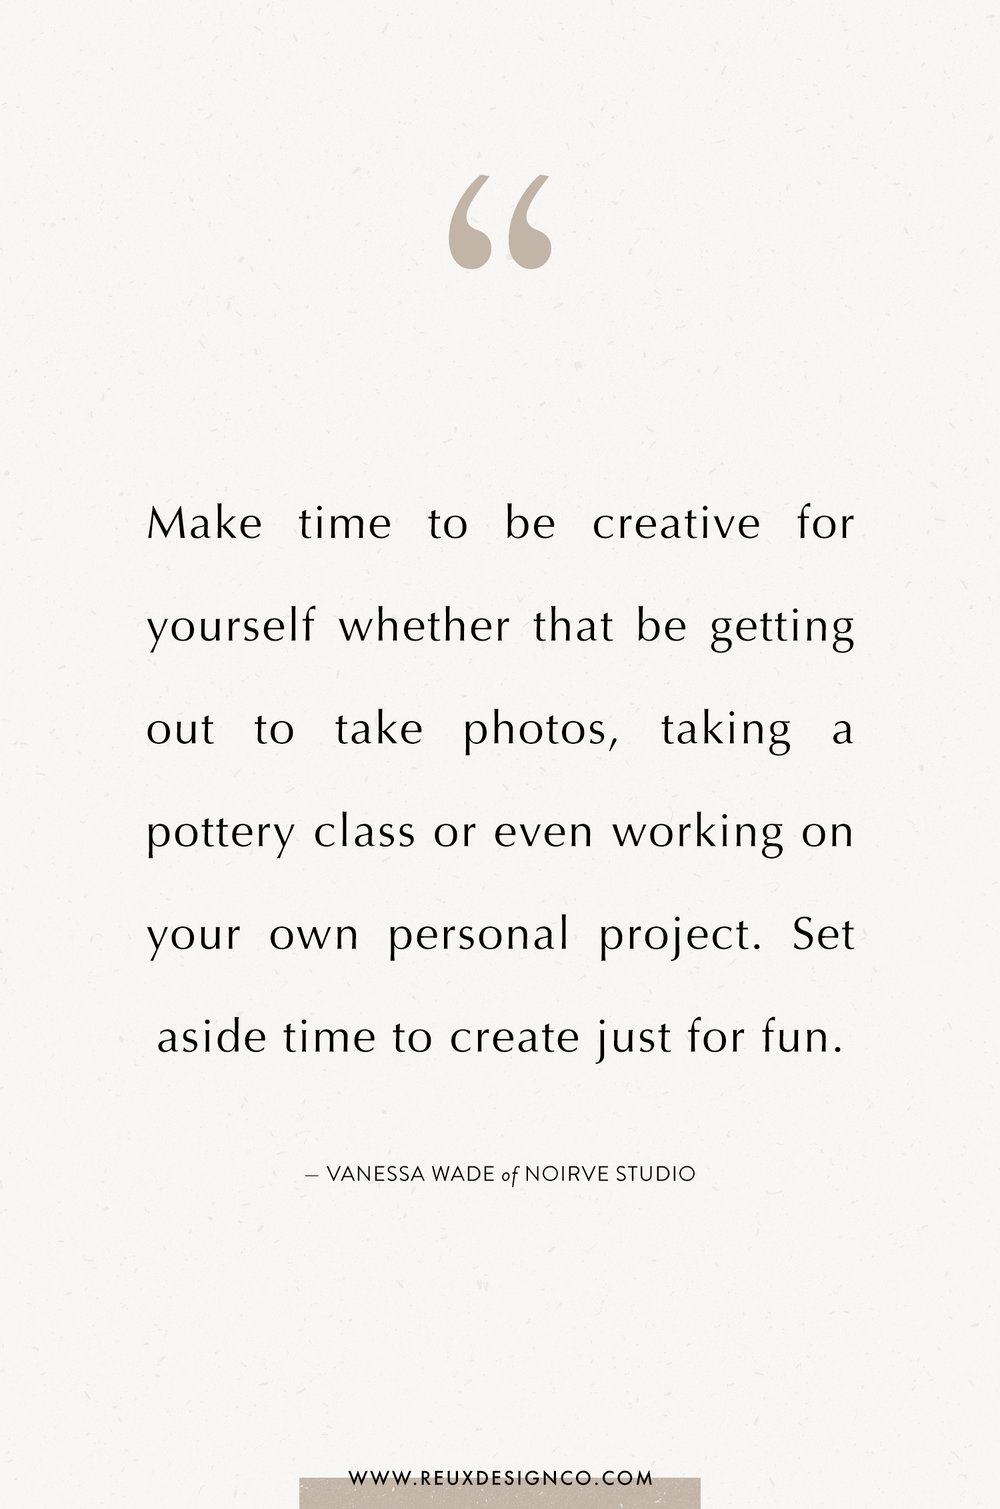 Branding + Business Tips from Vanessa Wade of Noirve Studio on the Reux Design Co. blog | positive affirmations, quotes on energy, quotes on abundance, affirmations on creativity, affirmations for women, affirmations for entrepreneurs, words to live by, build a sustainable business you love